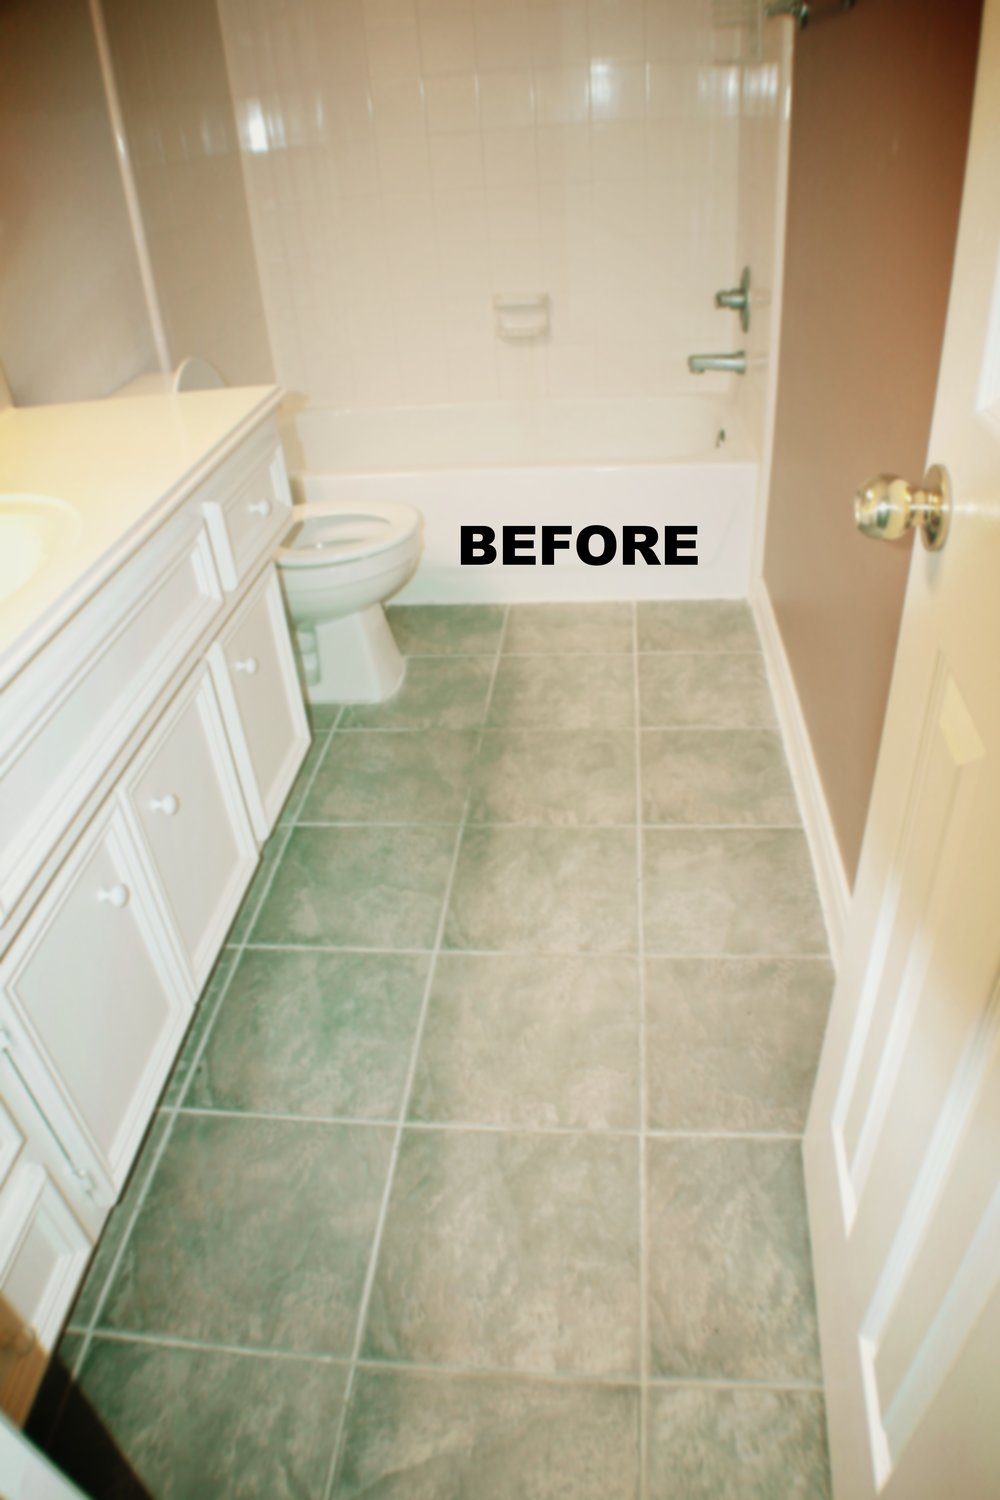 TUBTOSHOWERS CONVERSIONS EZACCESSBATHROOMS.COM 8322028453 COKER 035.JPG